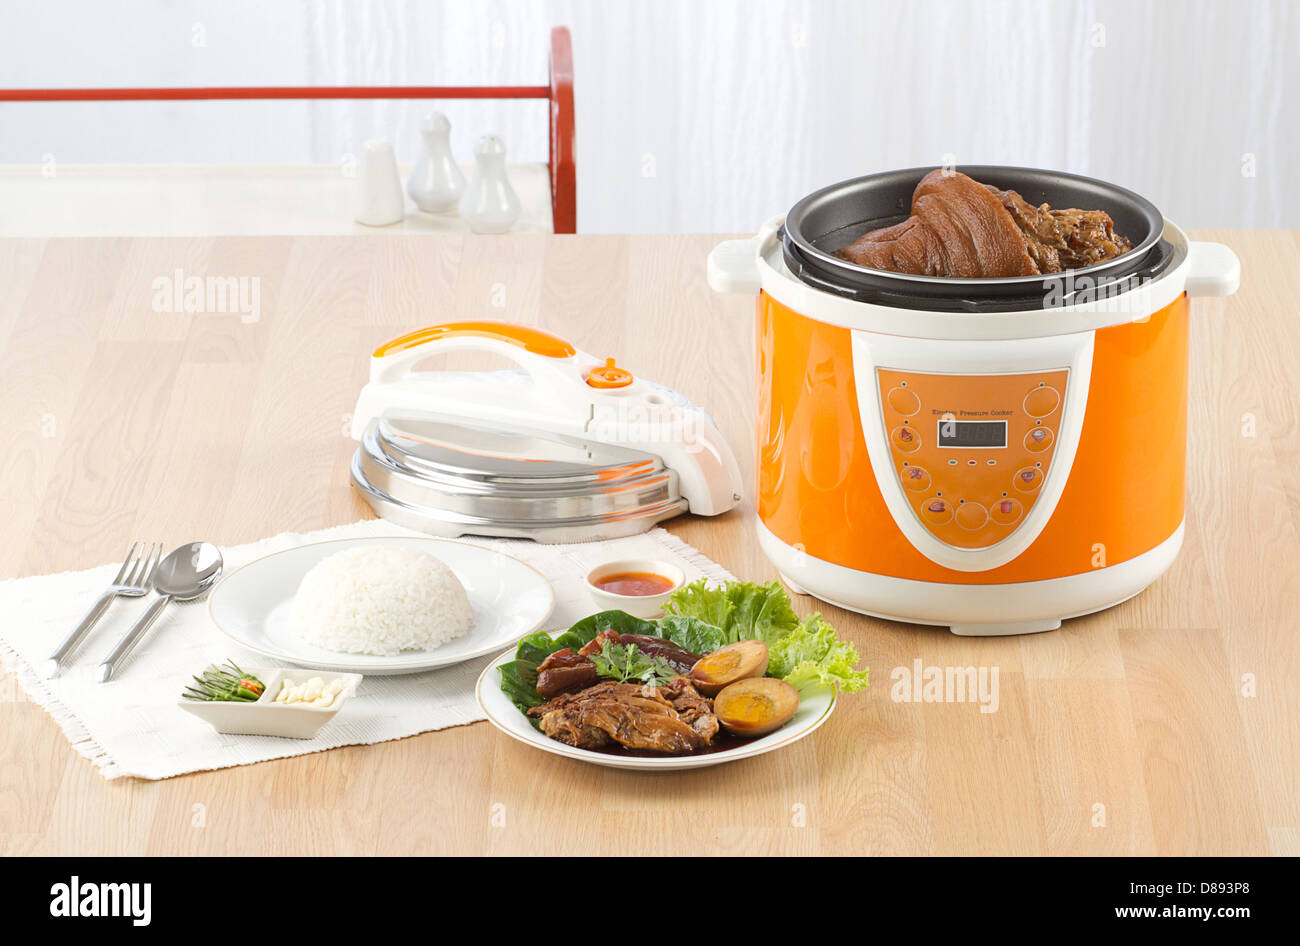 Electric pressure cooker new technology for cooking - Stock Image